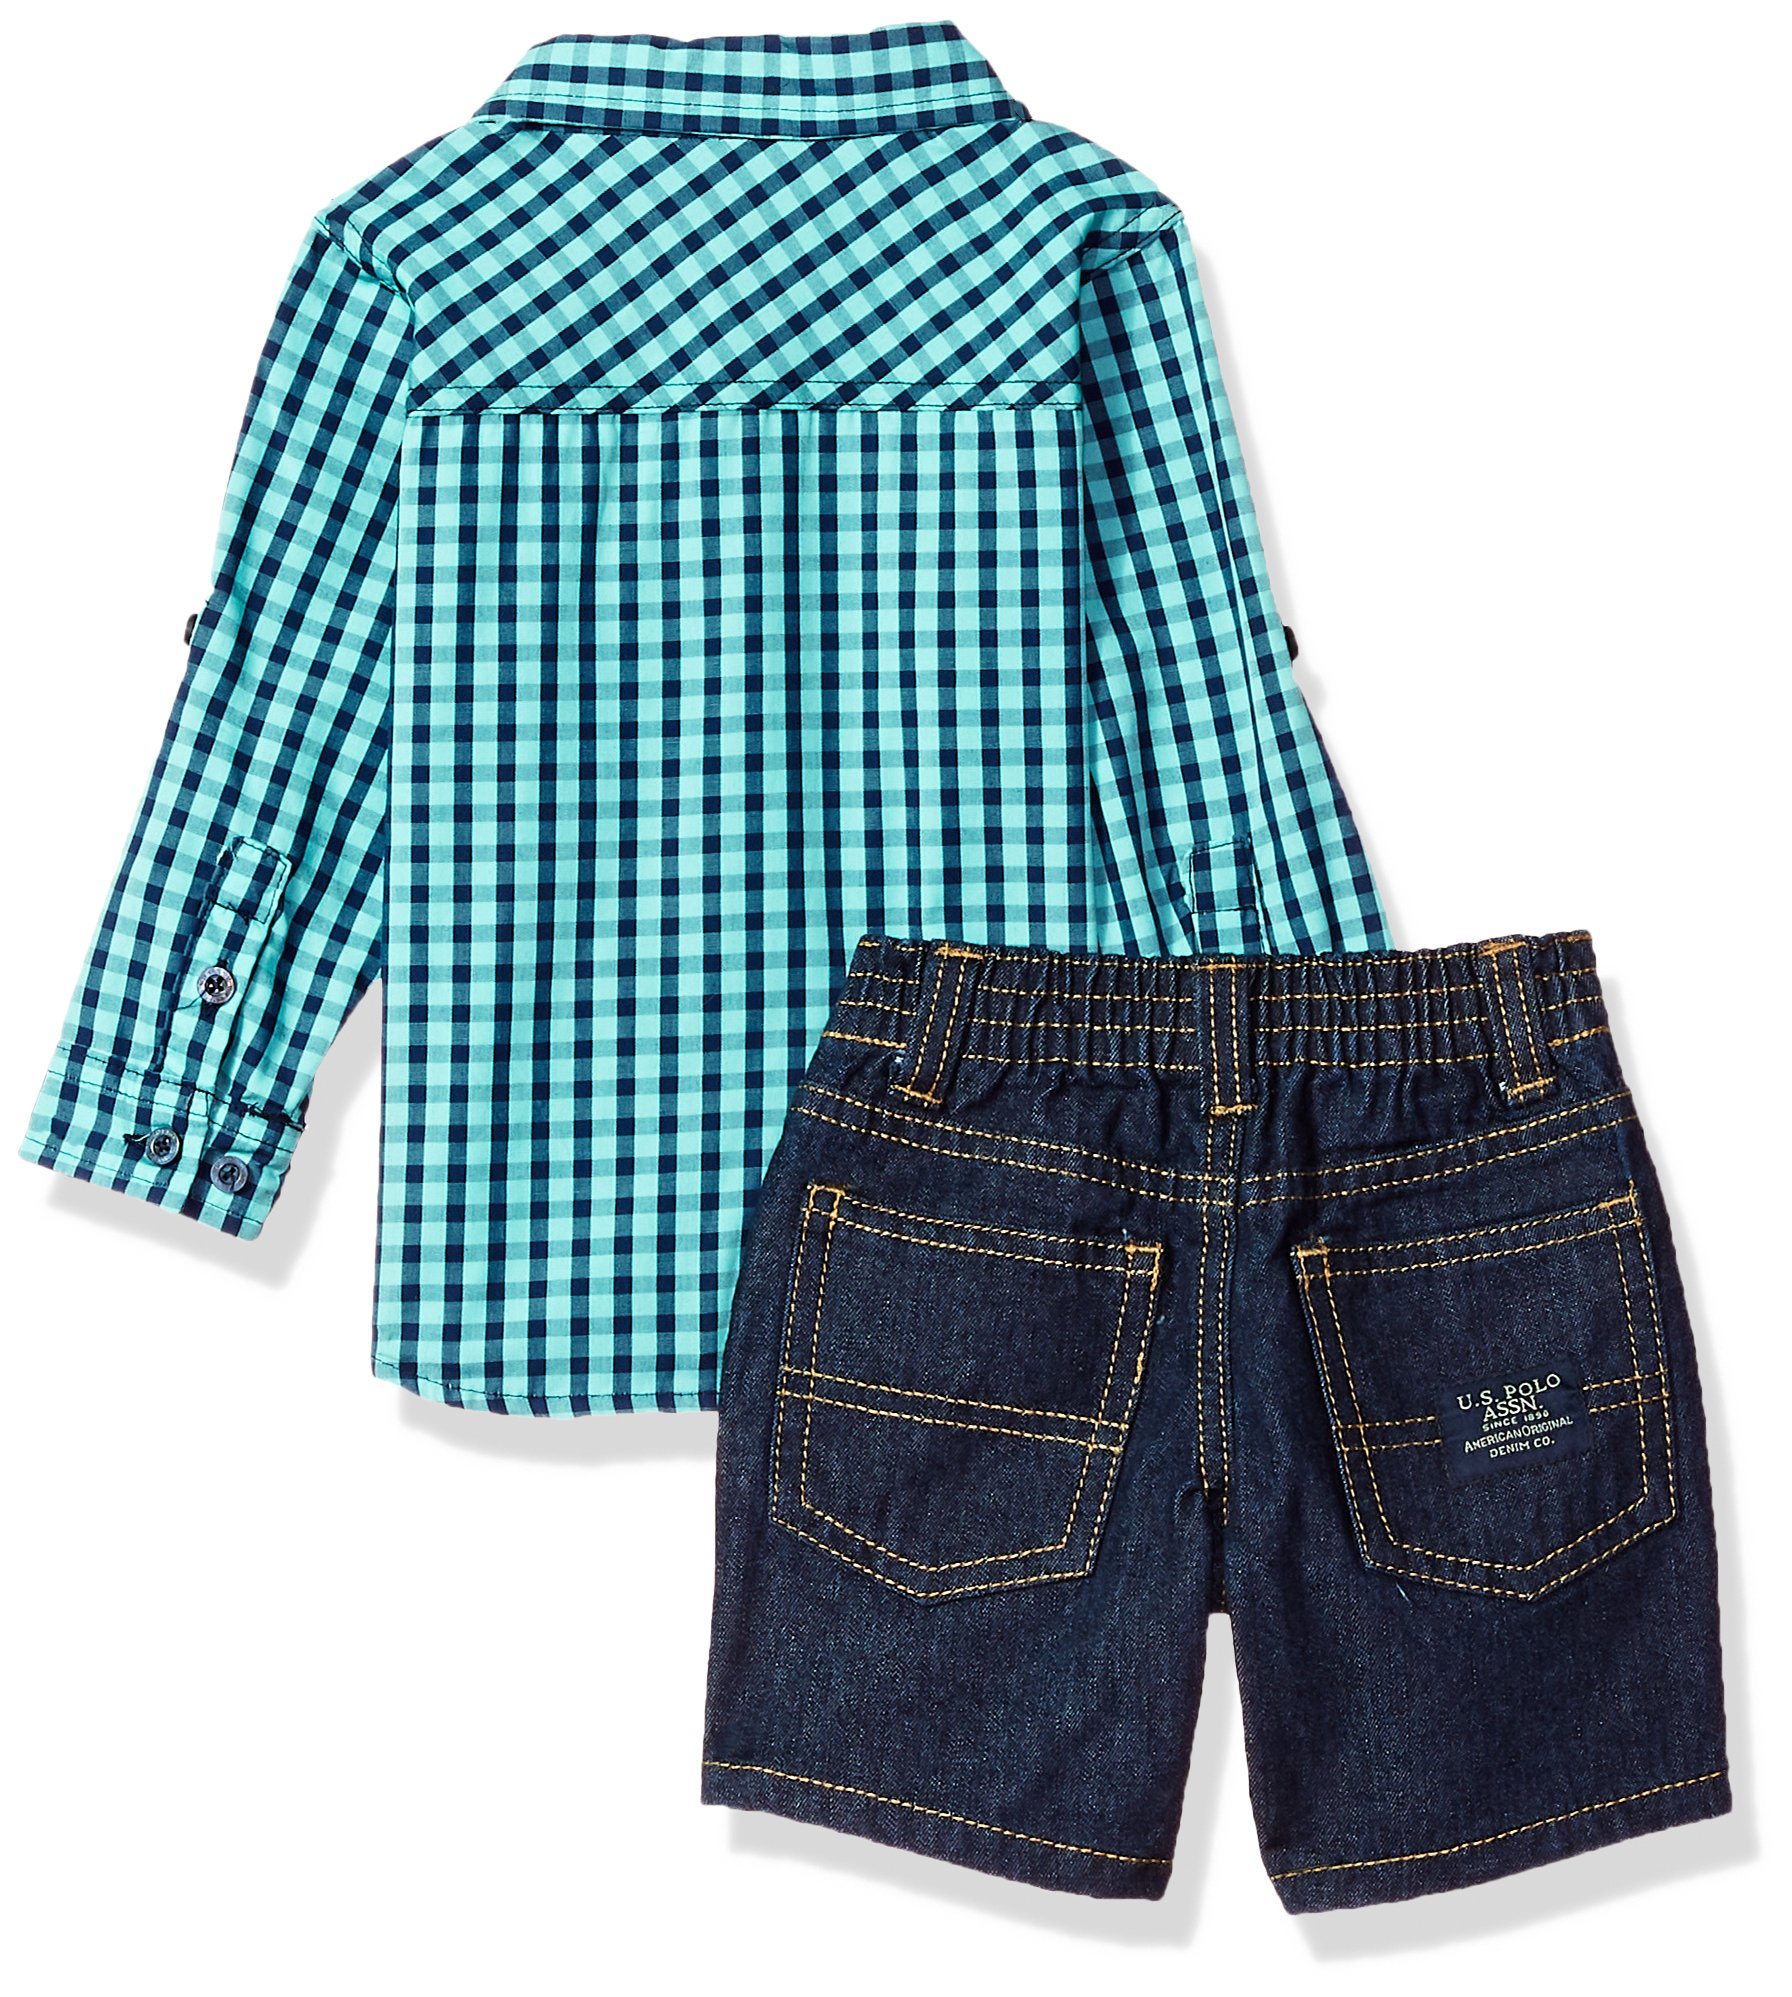 U.S. Polo Assn.. Baby Boys Long Sleeve Woven Shirt, T-Shirt and Short Set, Printed Fine American Clothing Multi Plaid, 12M by U.S. Polo Assn. (Image #2)